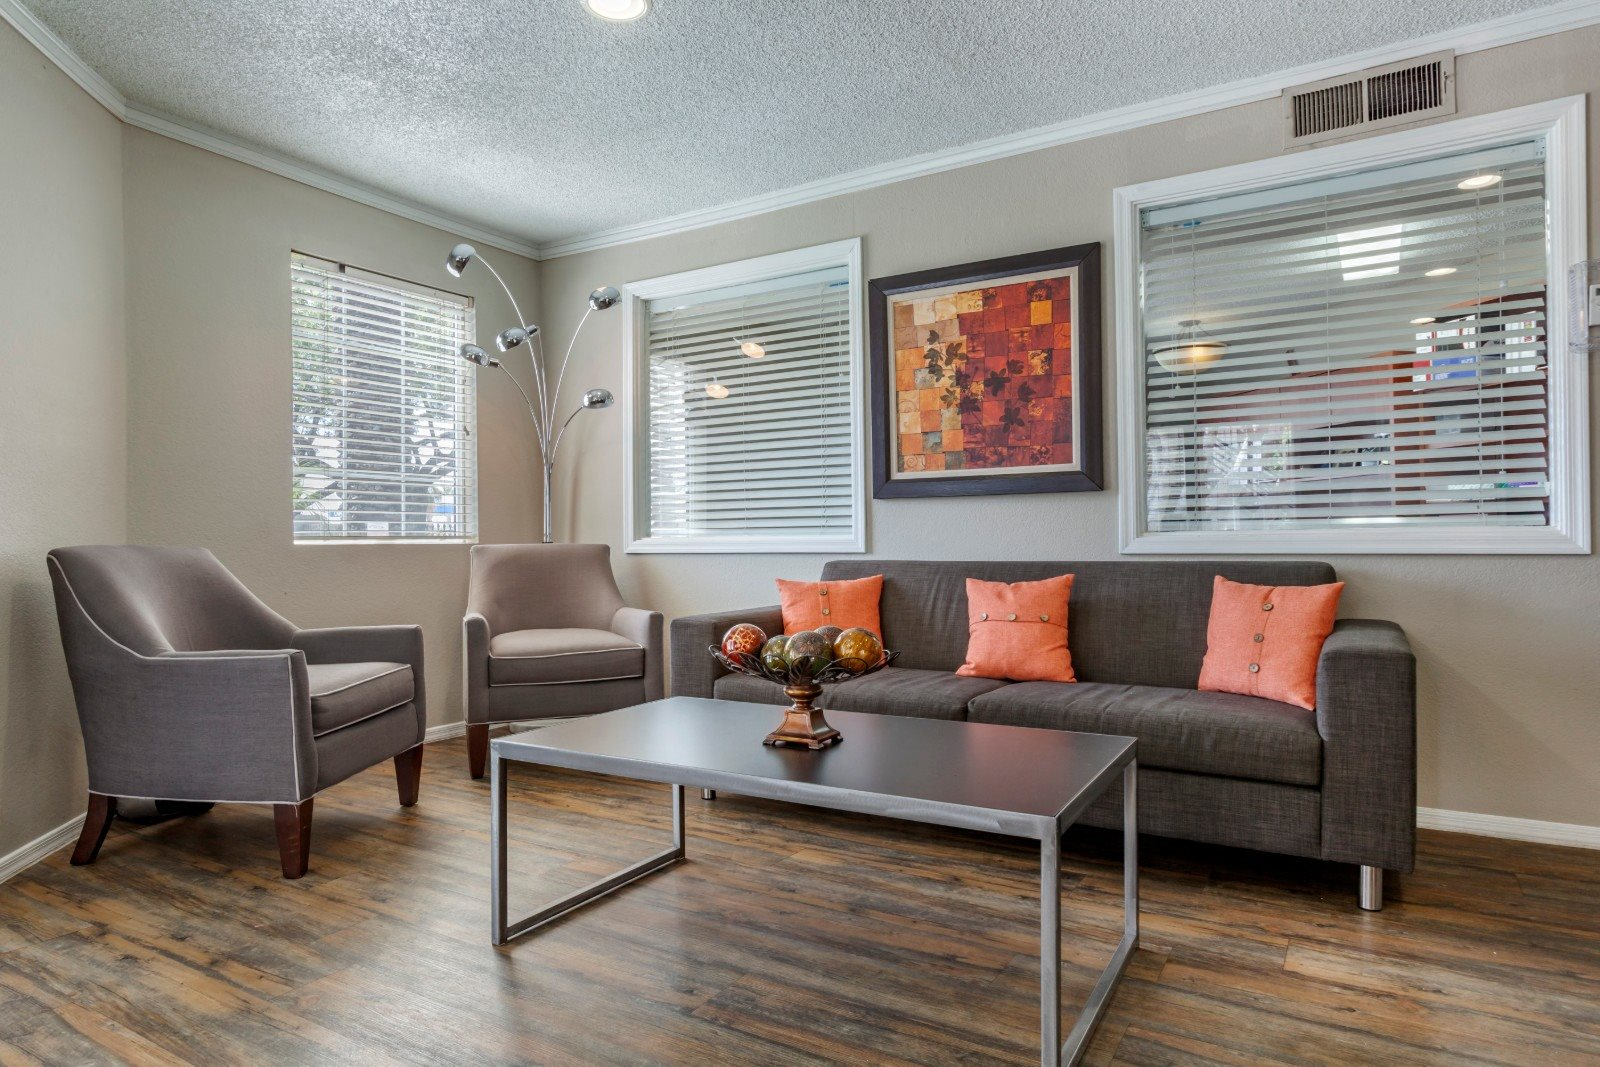 Clubhouse Seating Area with Grey Couch with Orange Pillows and Armchairs with Coffee Table in Front of  WIndows